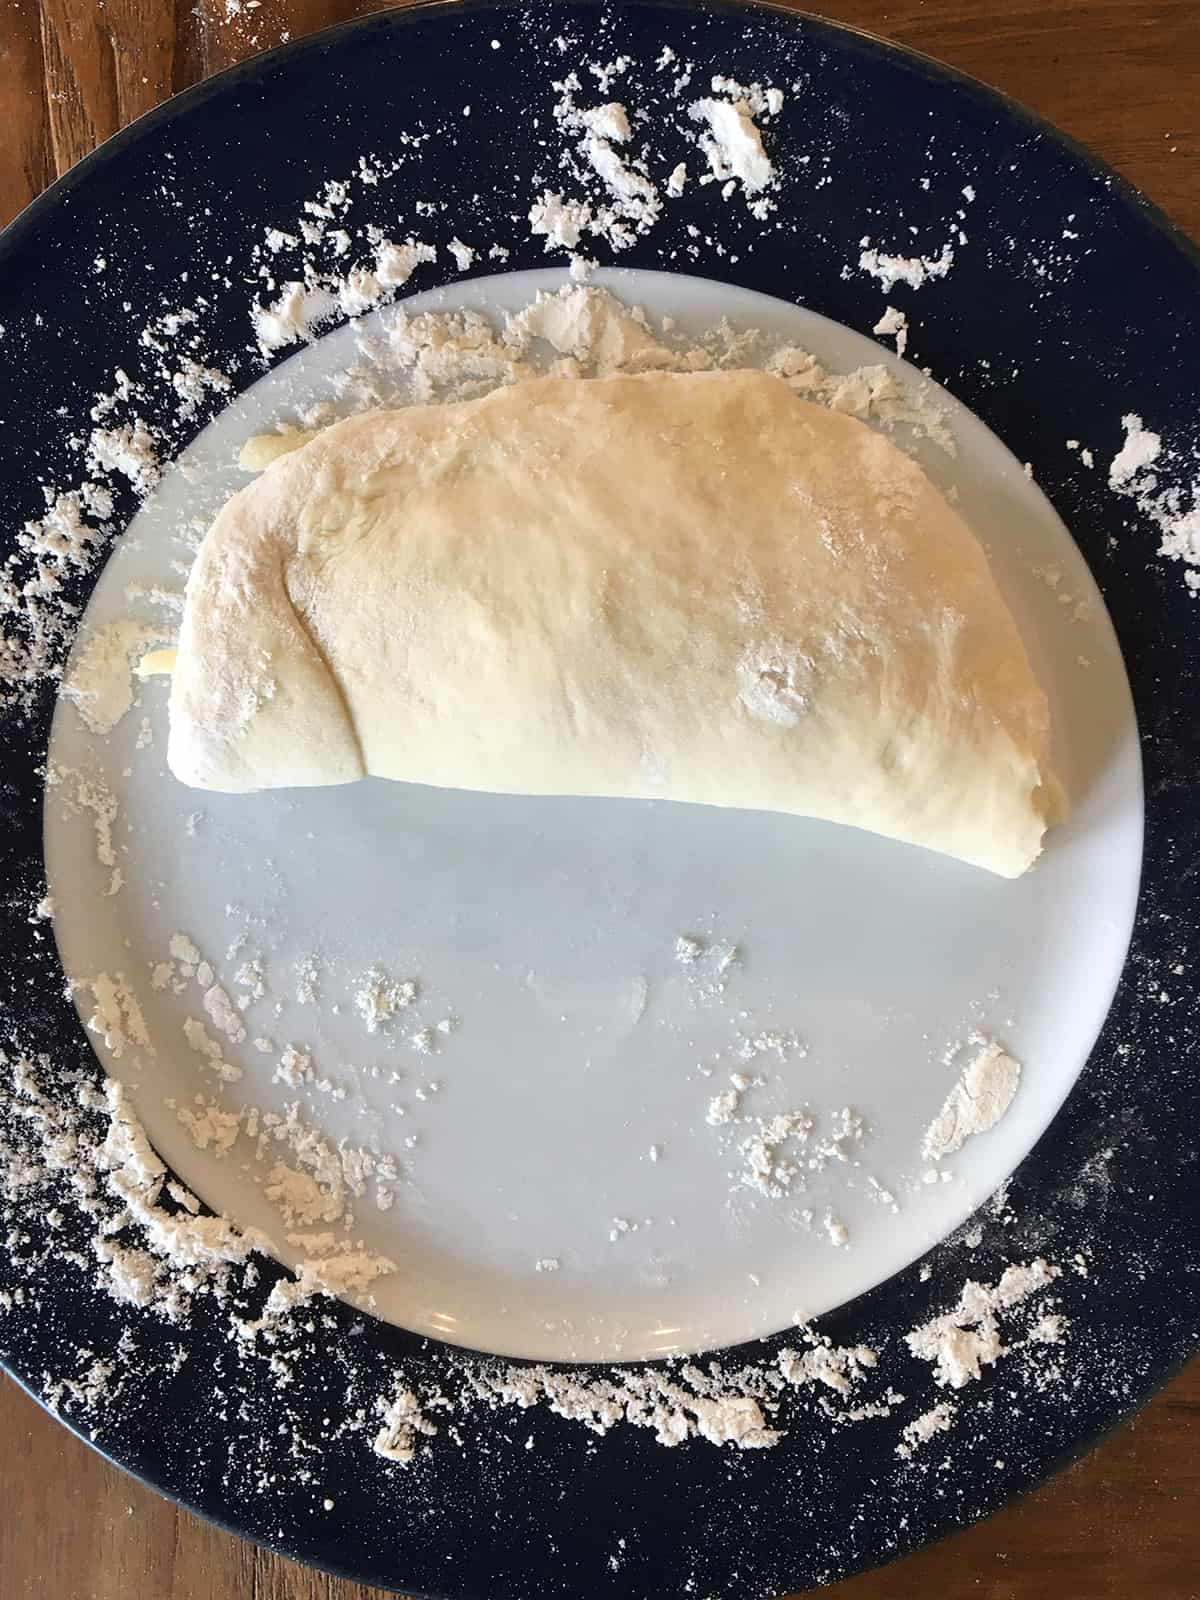 Calzone dough folded over the filings on a blue and white plate